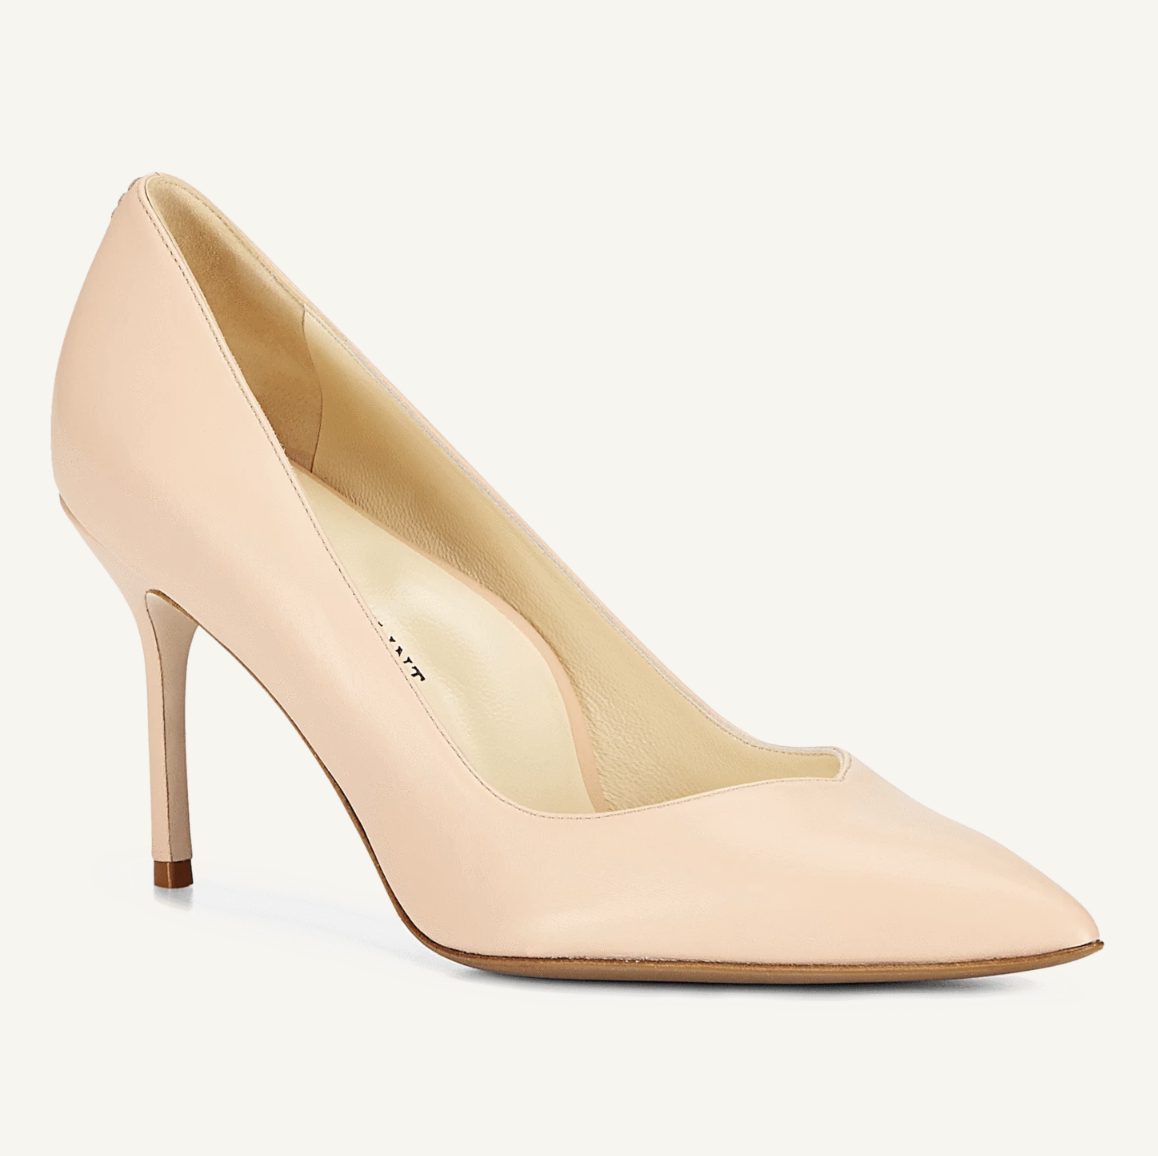 Sarah Flint Perfect Pump Blush Leather